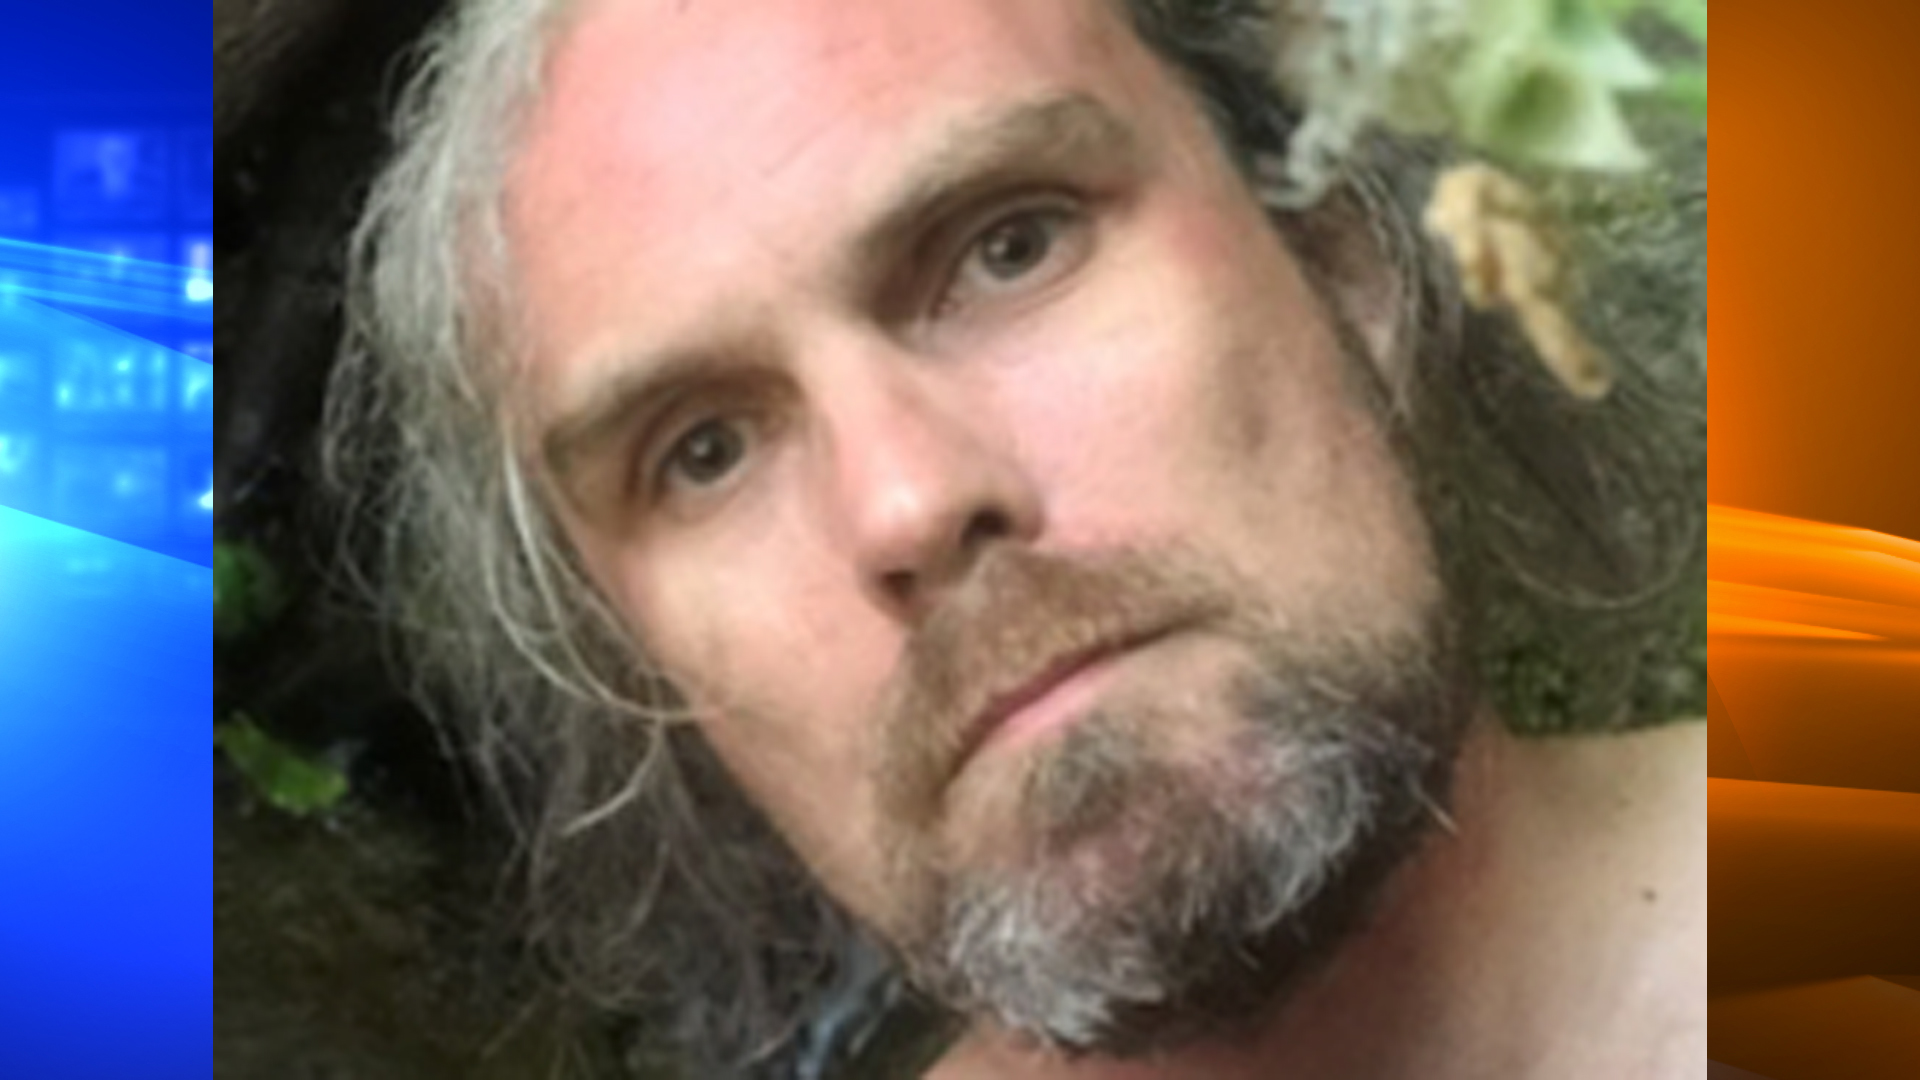 David Gordon Johnson is seen in a photo released by the Calaveras County Sheriff's Office.